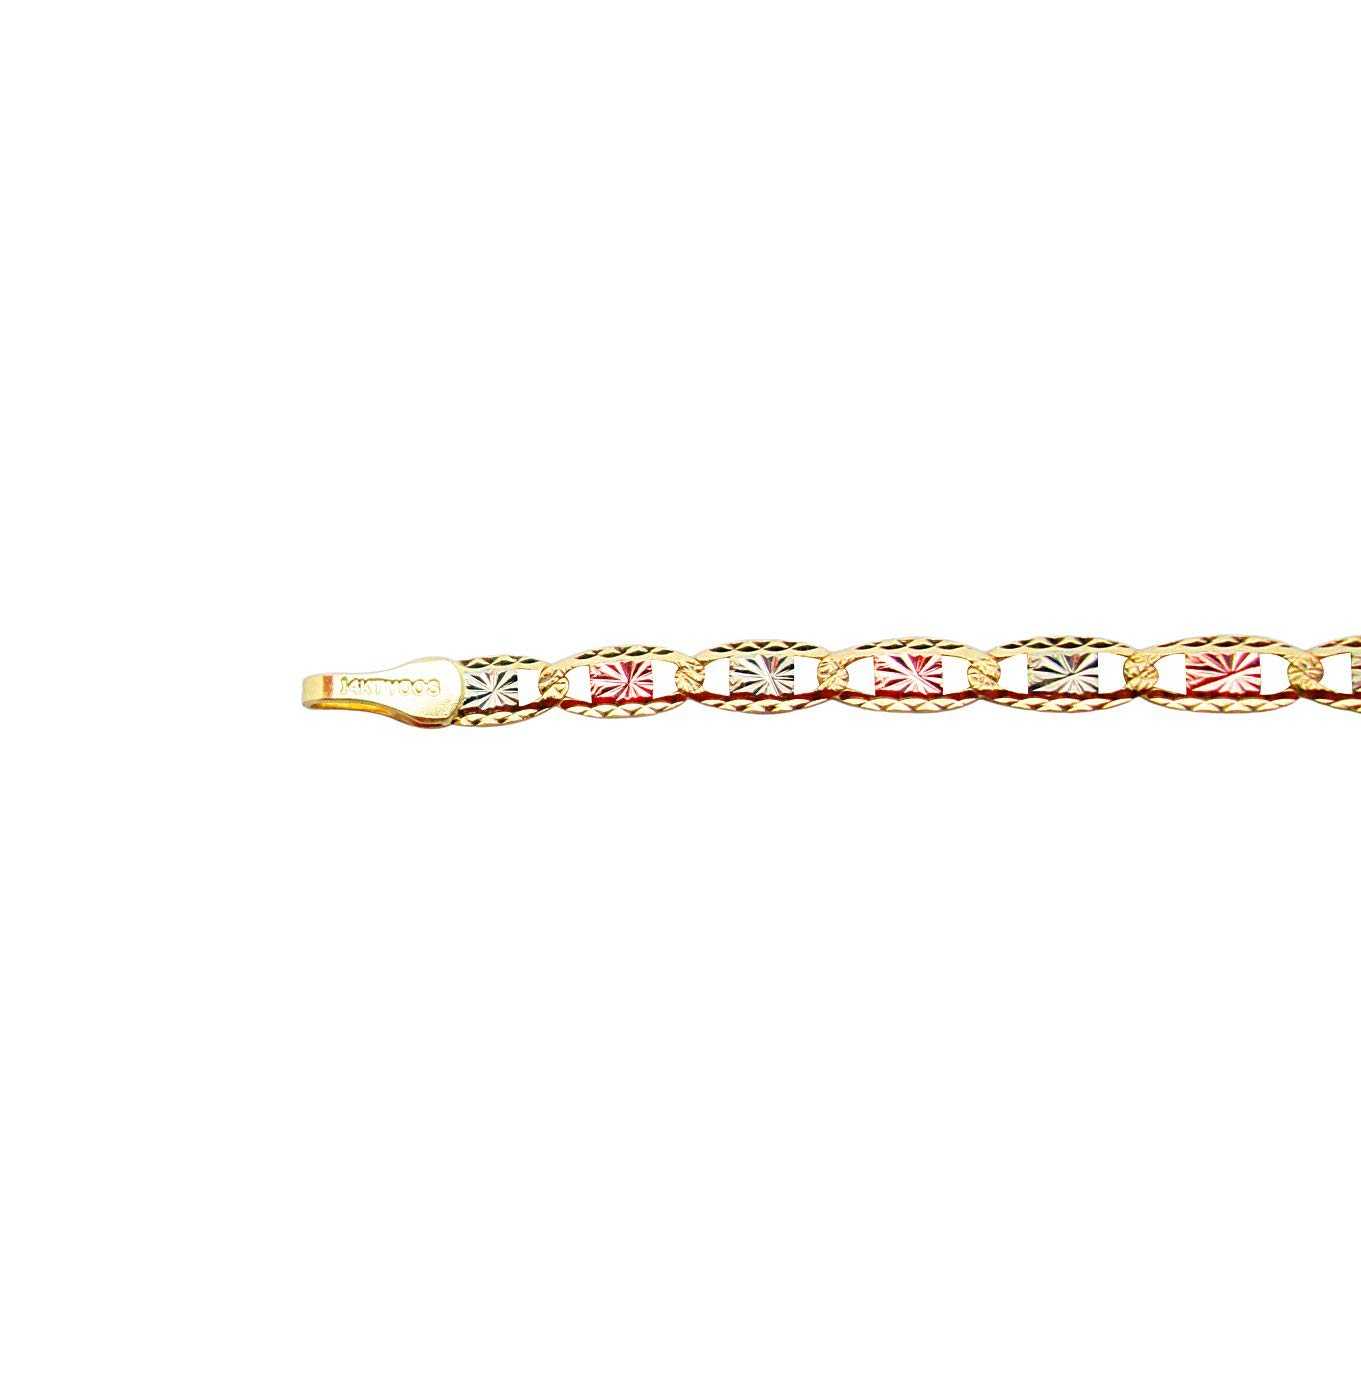 AMZ Jewelry Children Babies 14k Tri Color Gold Valentino Link ID Bracelet with Guadalupe 5.5 inch by AMZ Jewelry (Image #2)